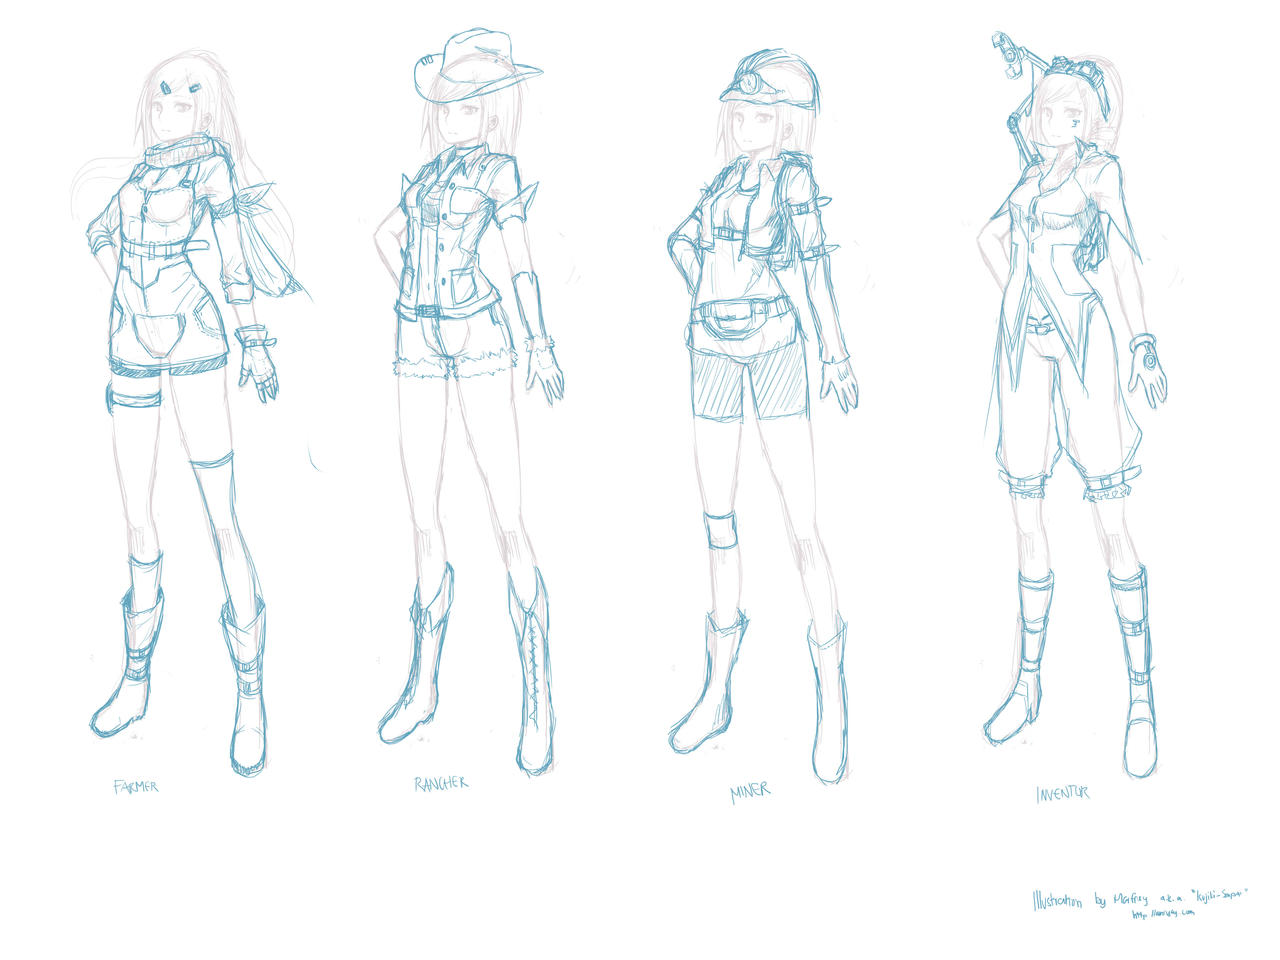 Game Design Character Art : Game character concept design by marfrey on deviantart